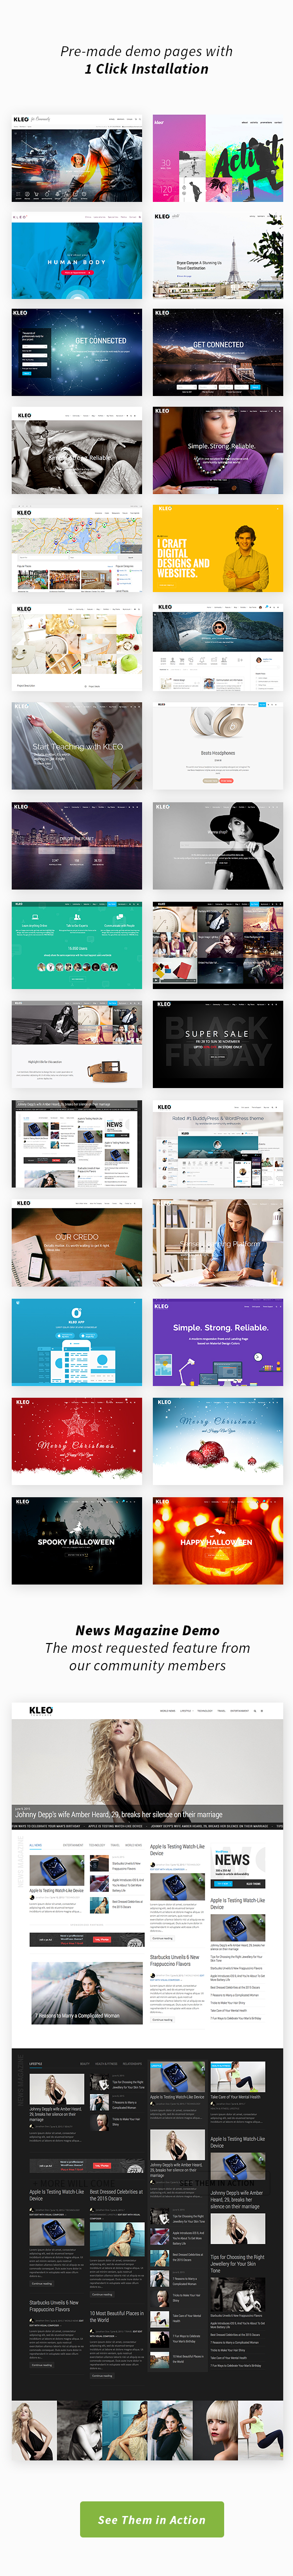 KLEO - Pro Community Focused, Multi-Purpose BuddyPress Theme - 4